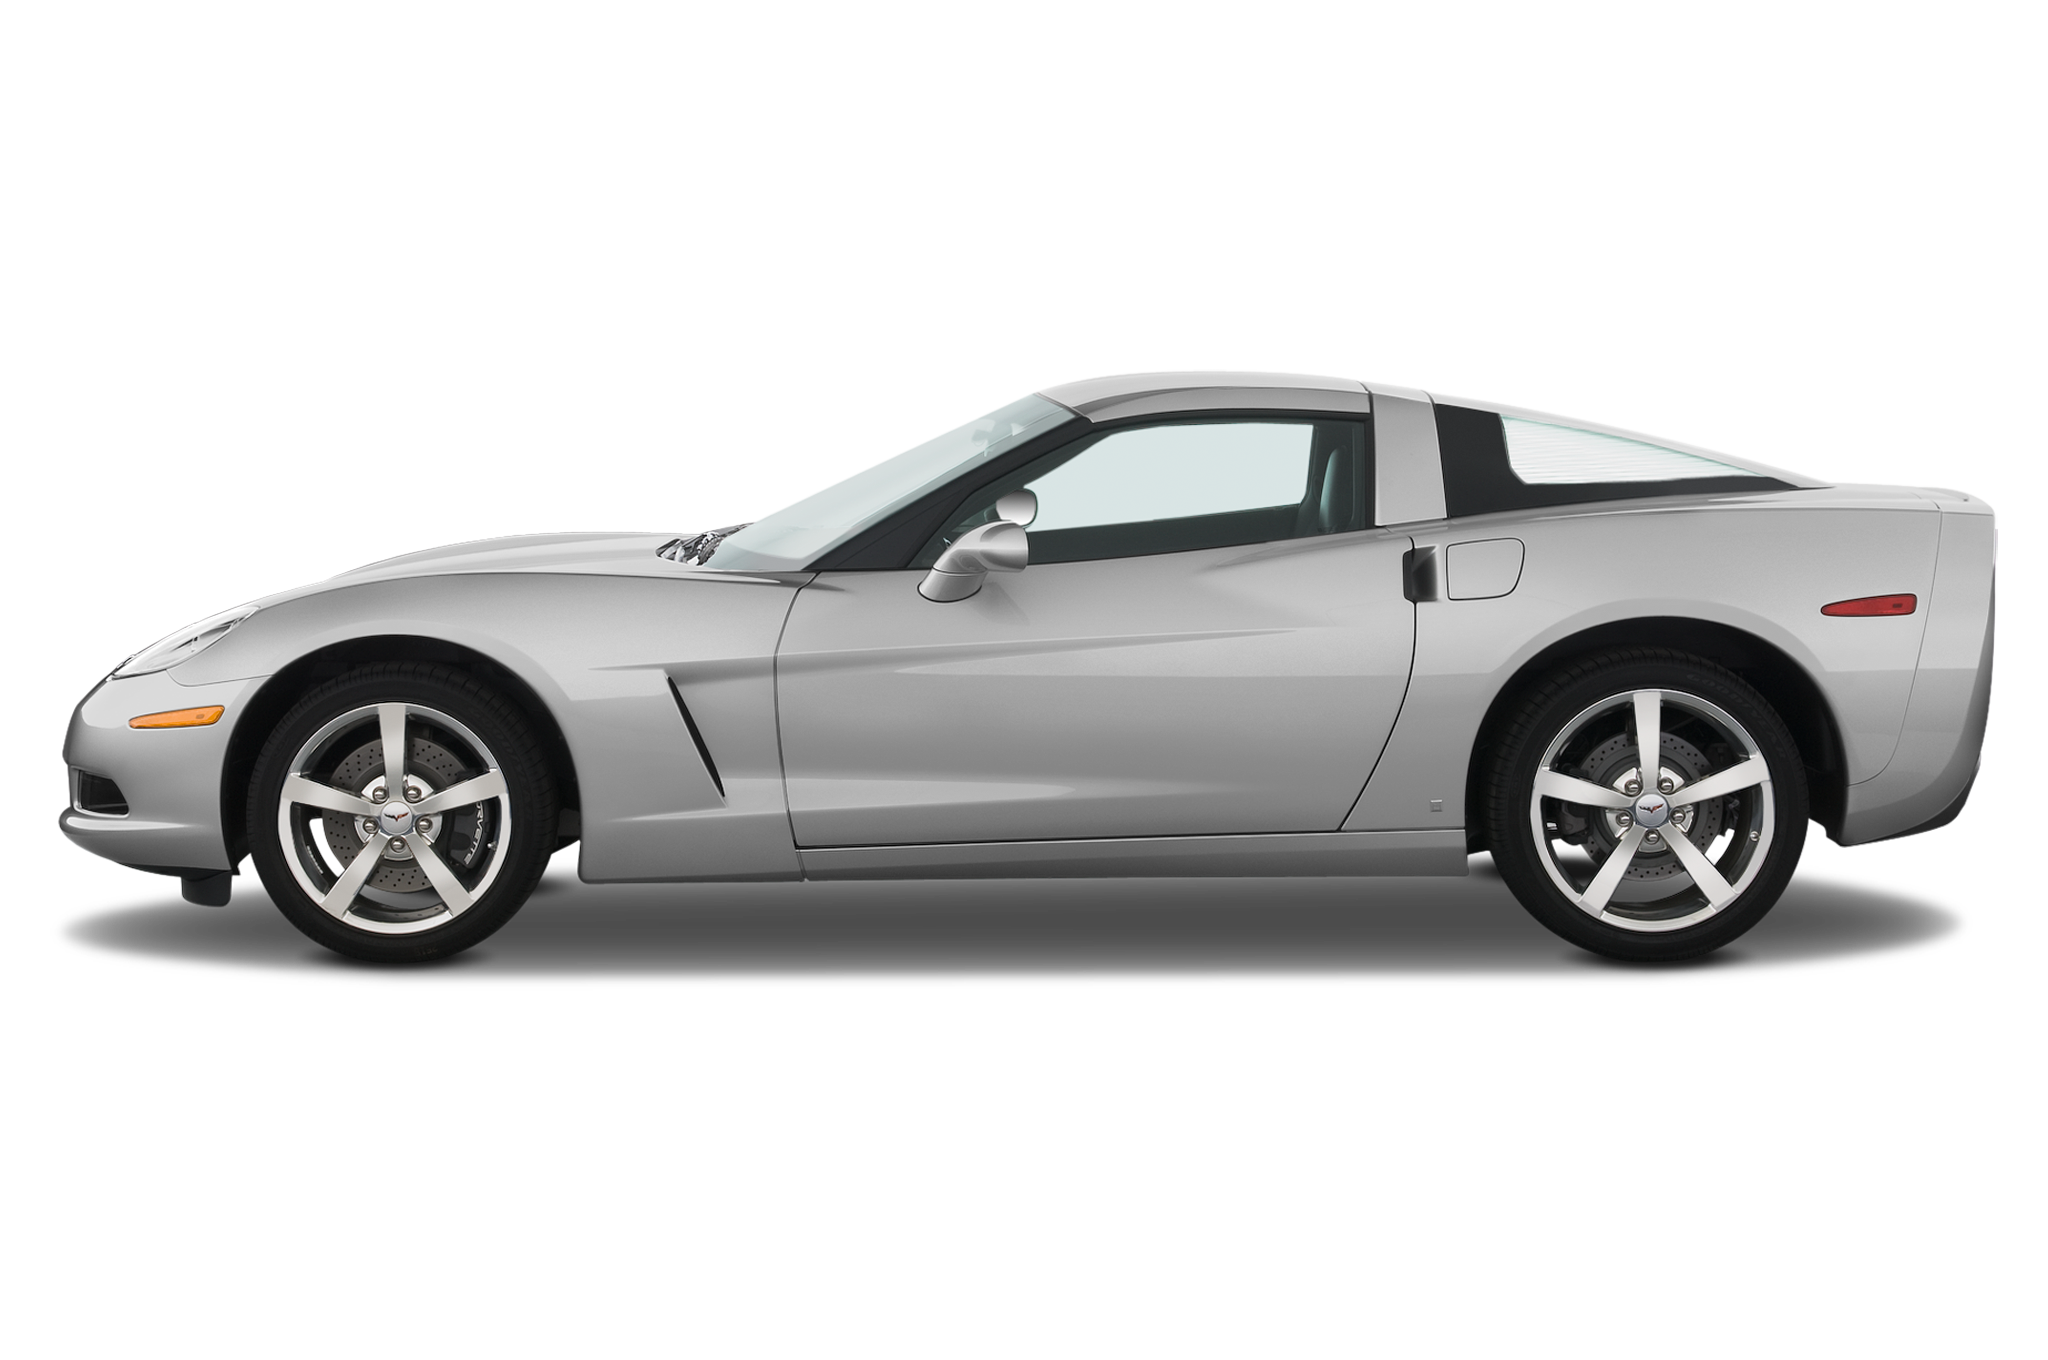 2010 Chevrolet Corvette Grand Sport Chevy Coupe Review 2011 Cruze Fuse Box 19 76